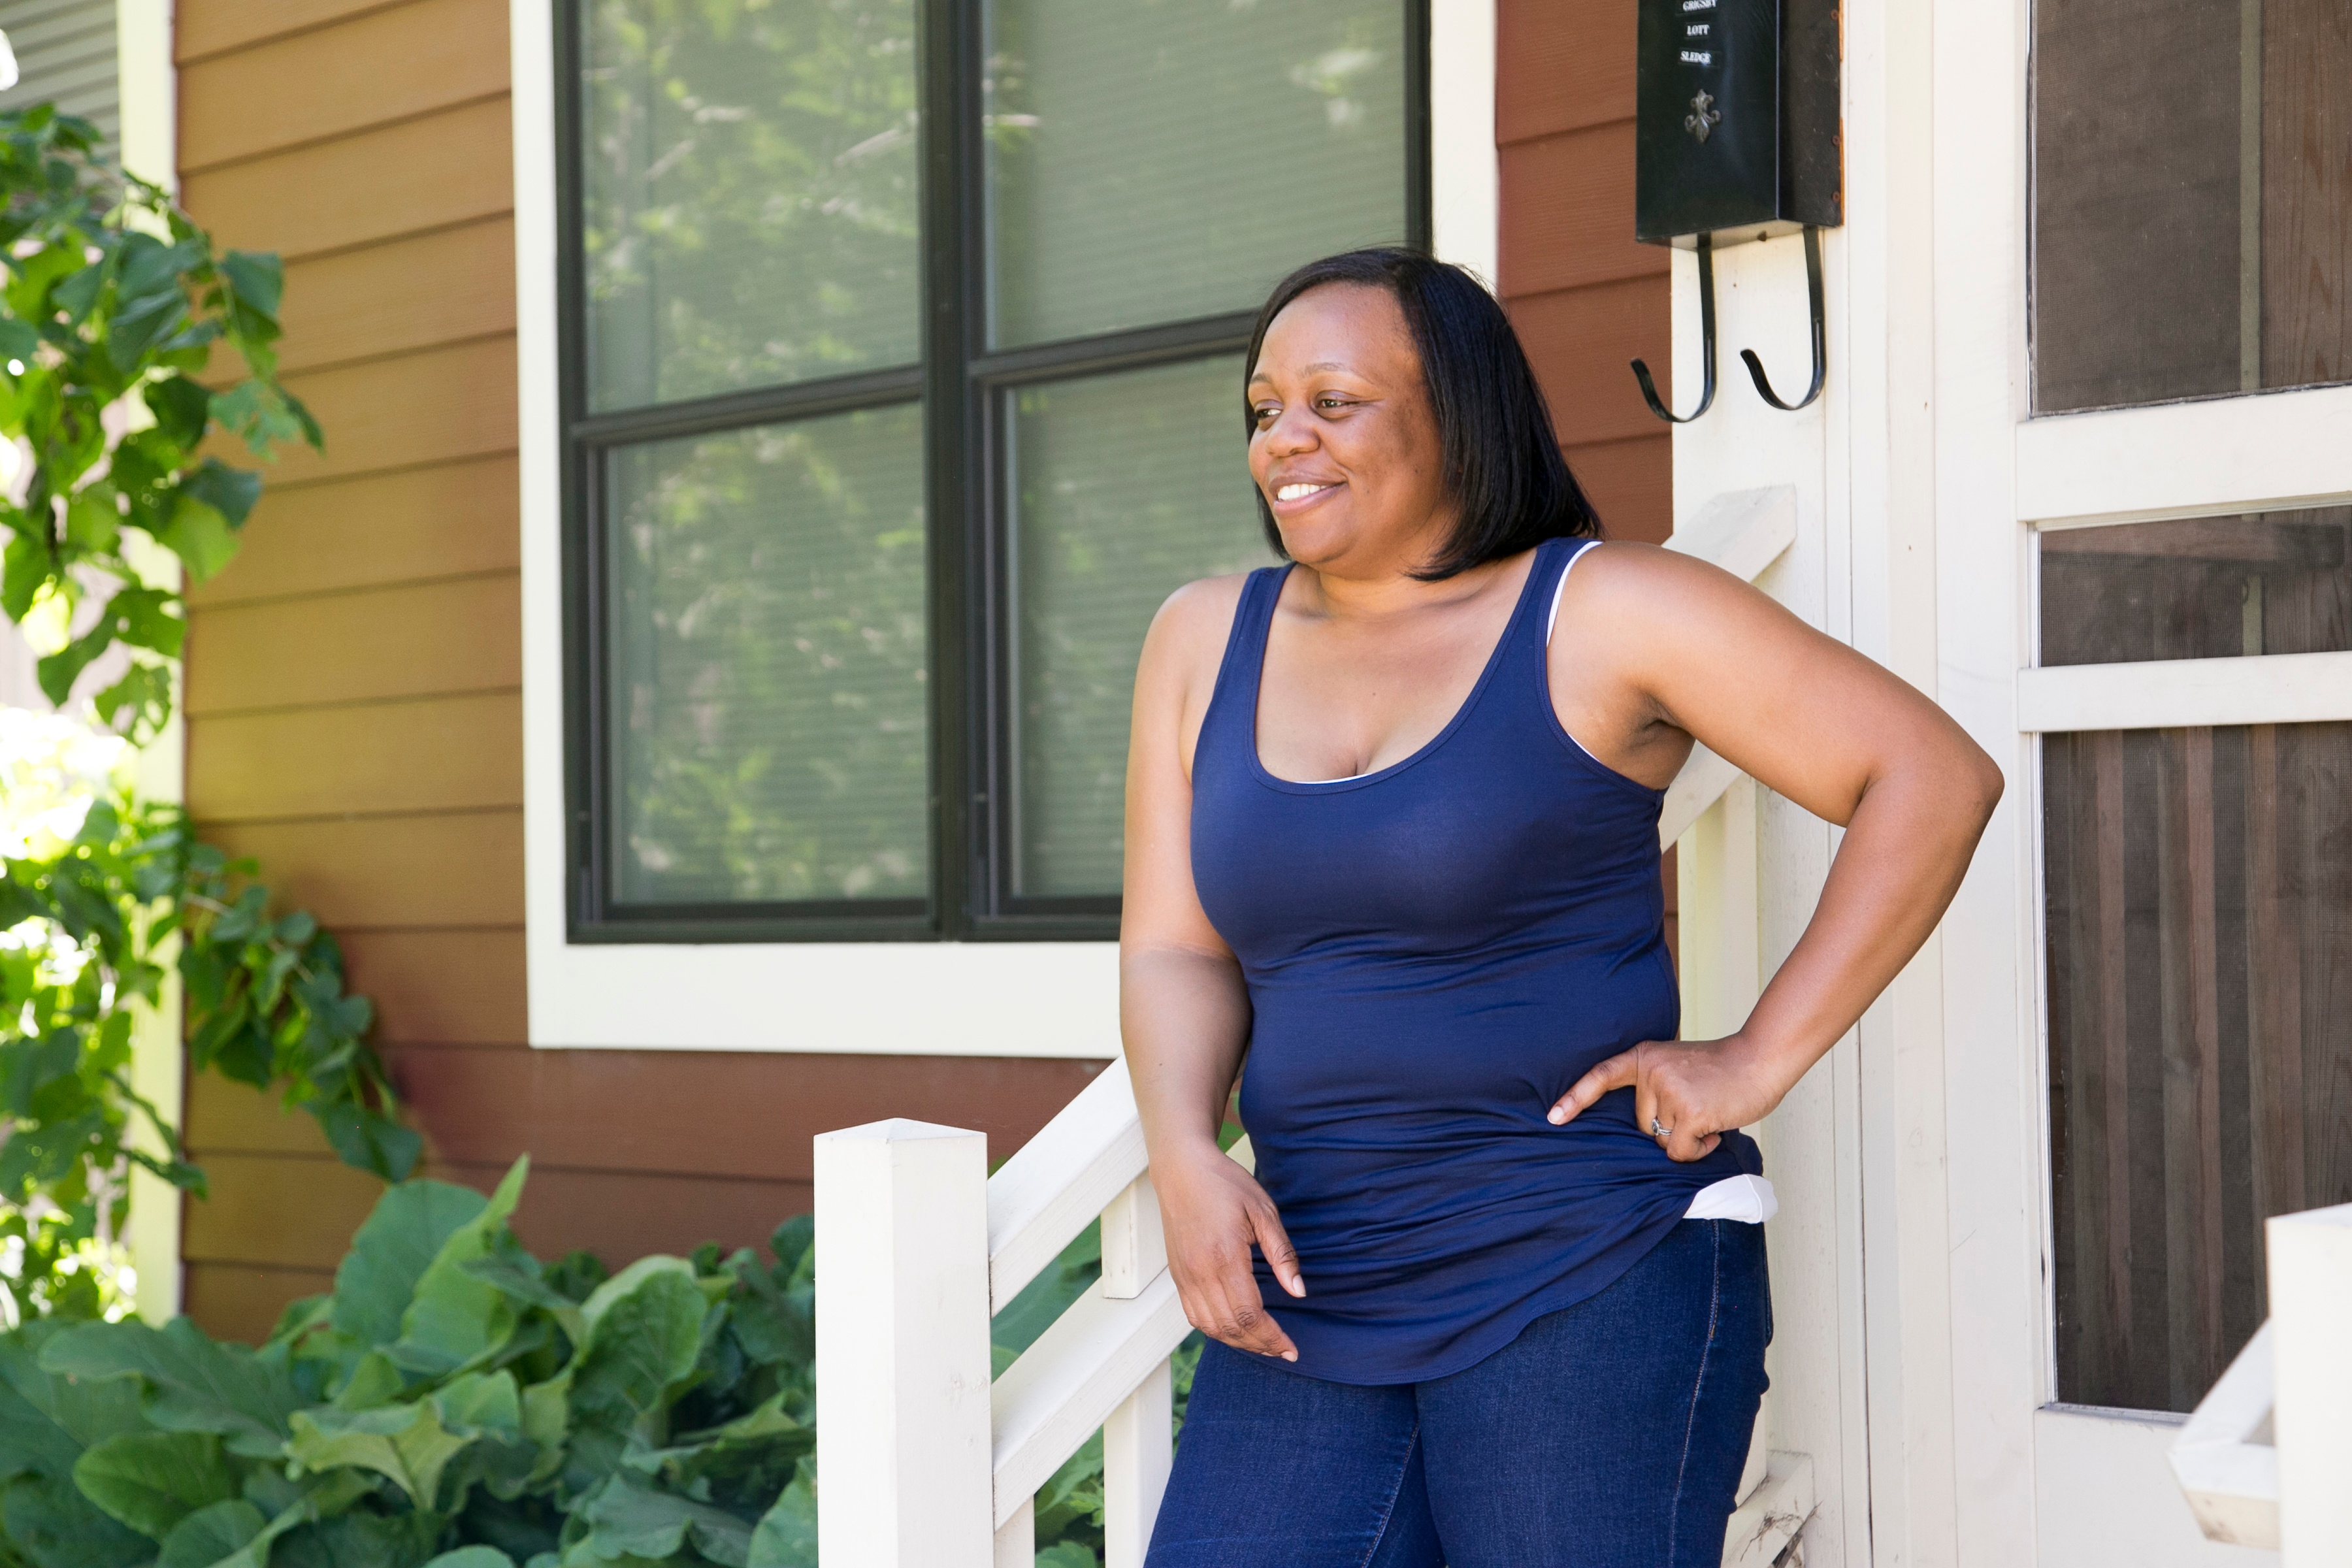 Lynnisha by her home